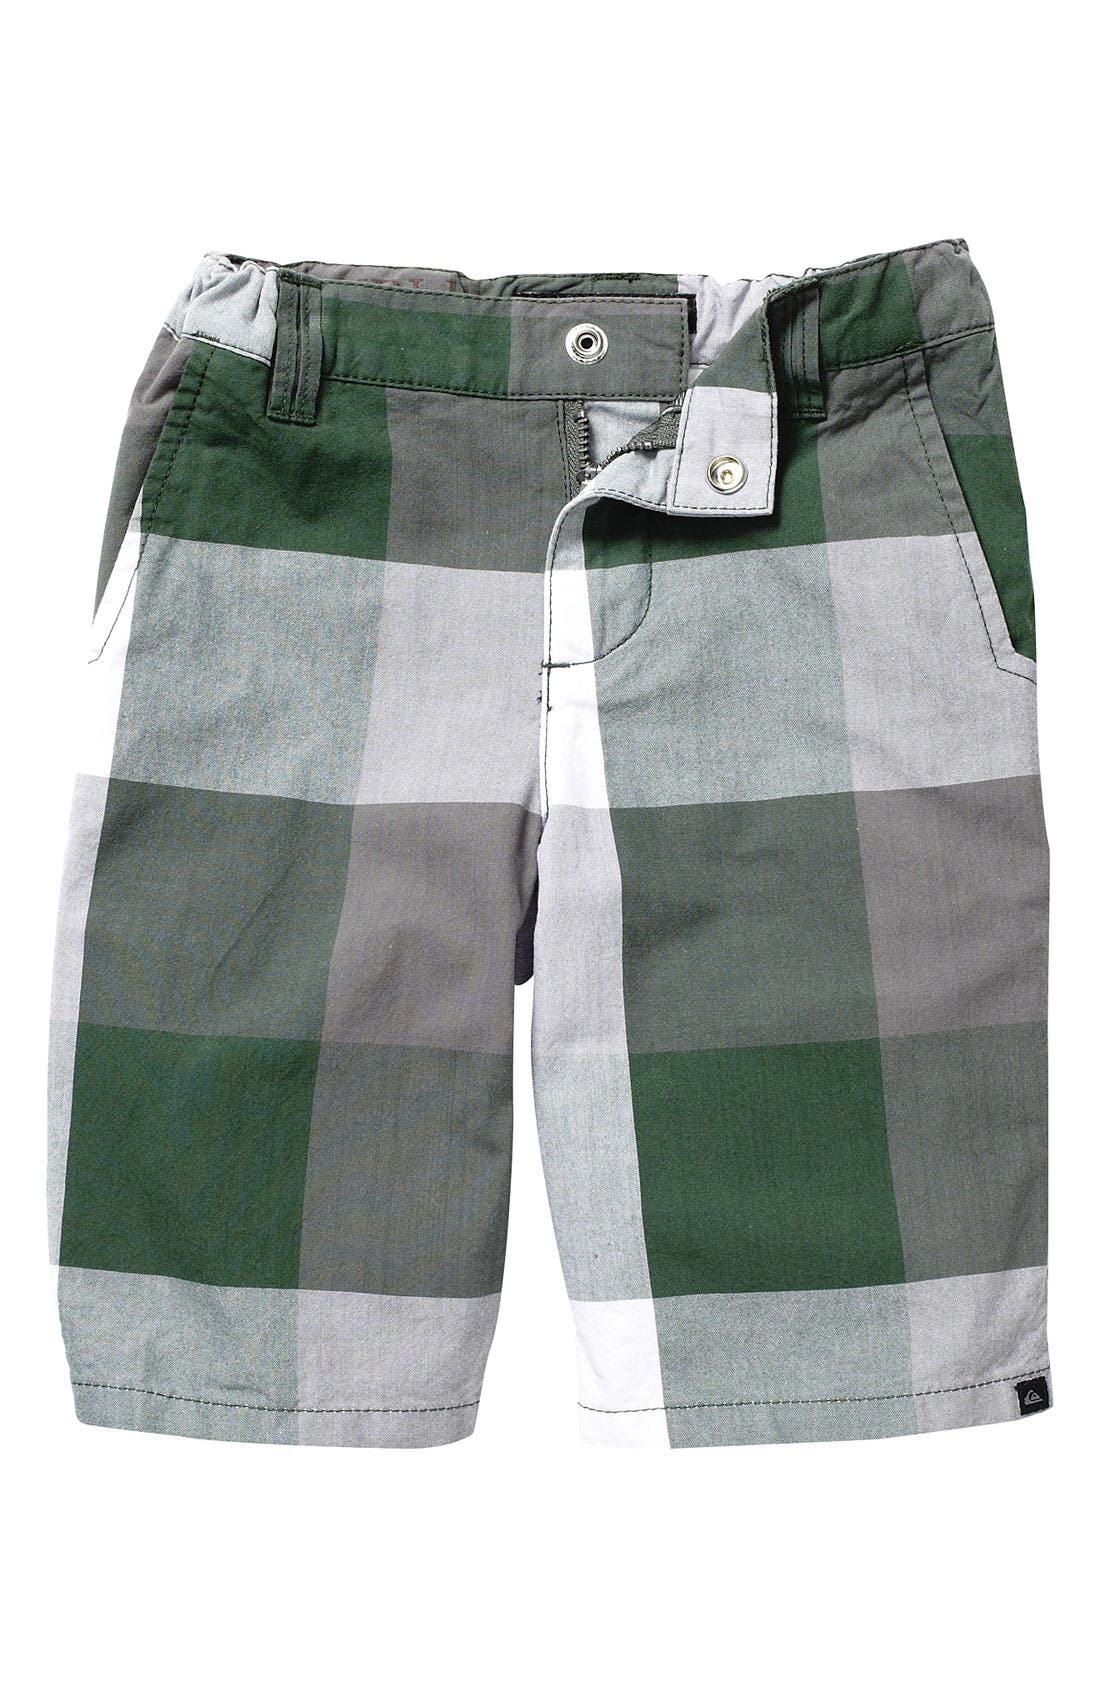 Alternate Image 1 Selected - Quiksilver 'Colossal' Plaid Shorts (Toddler)